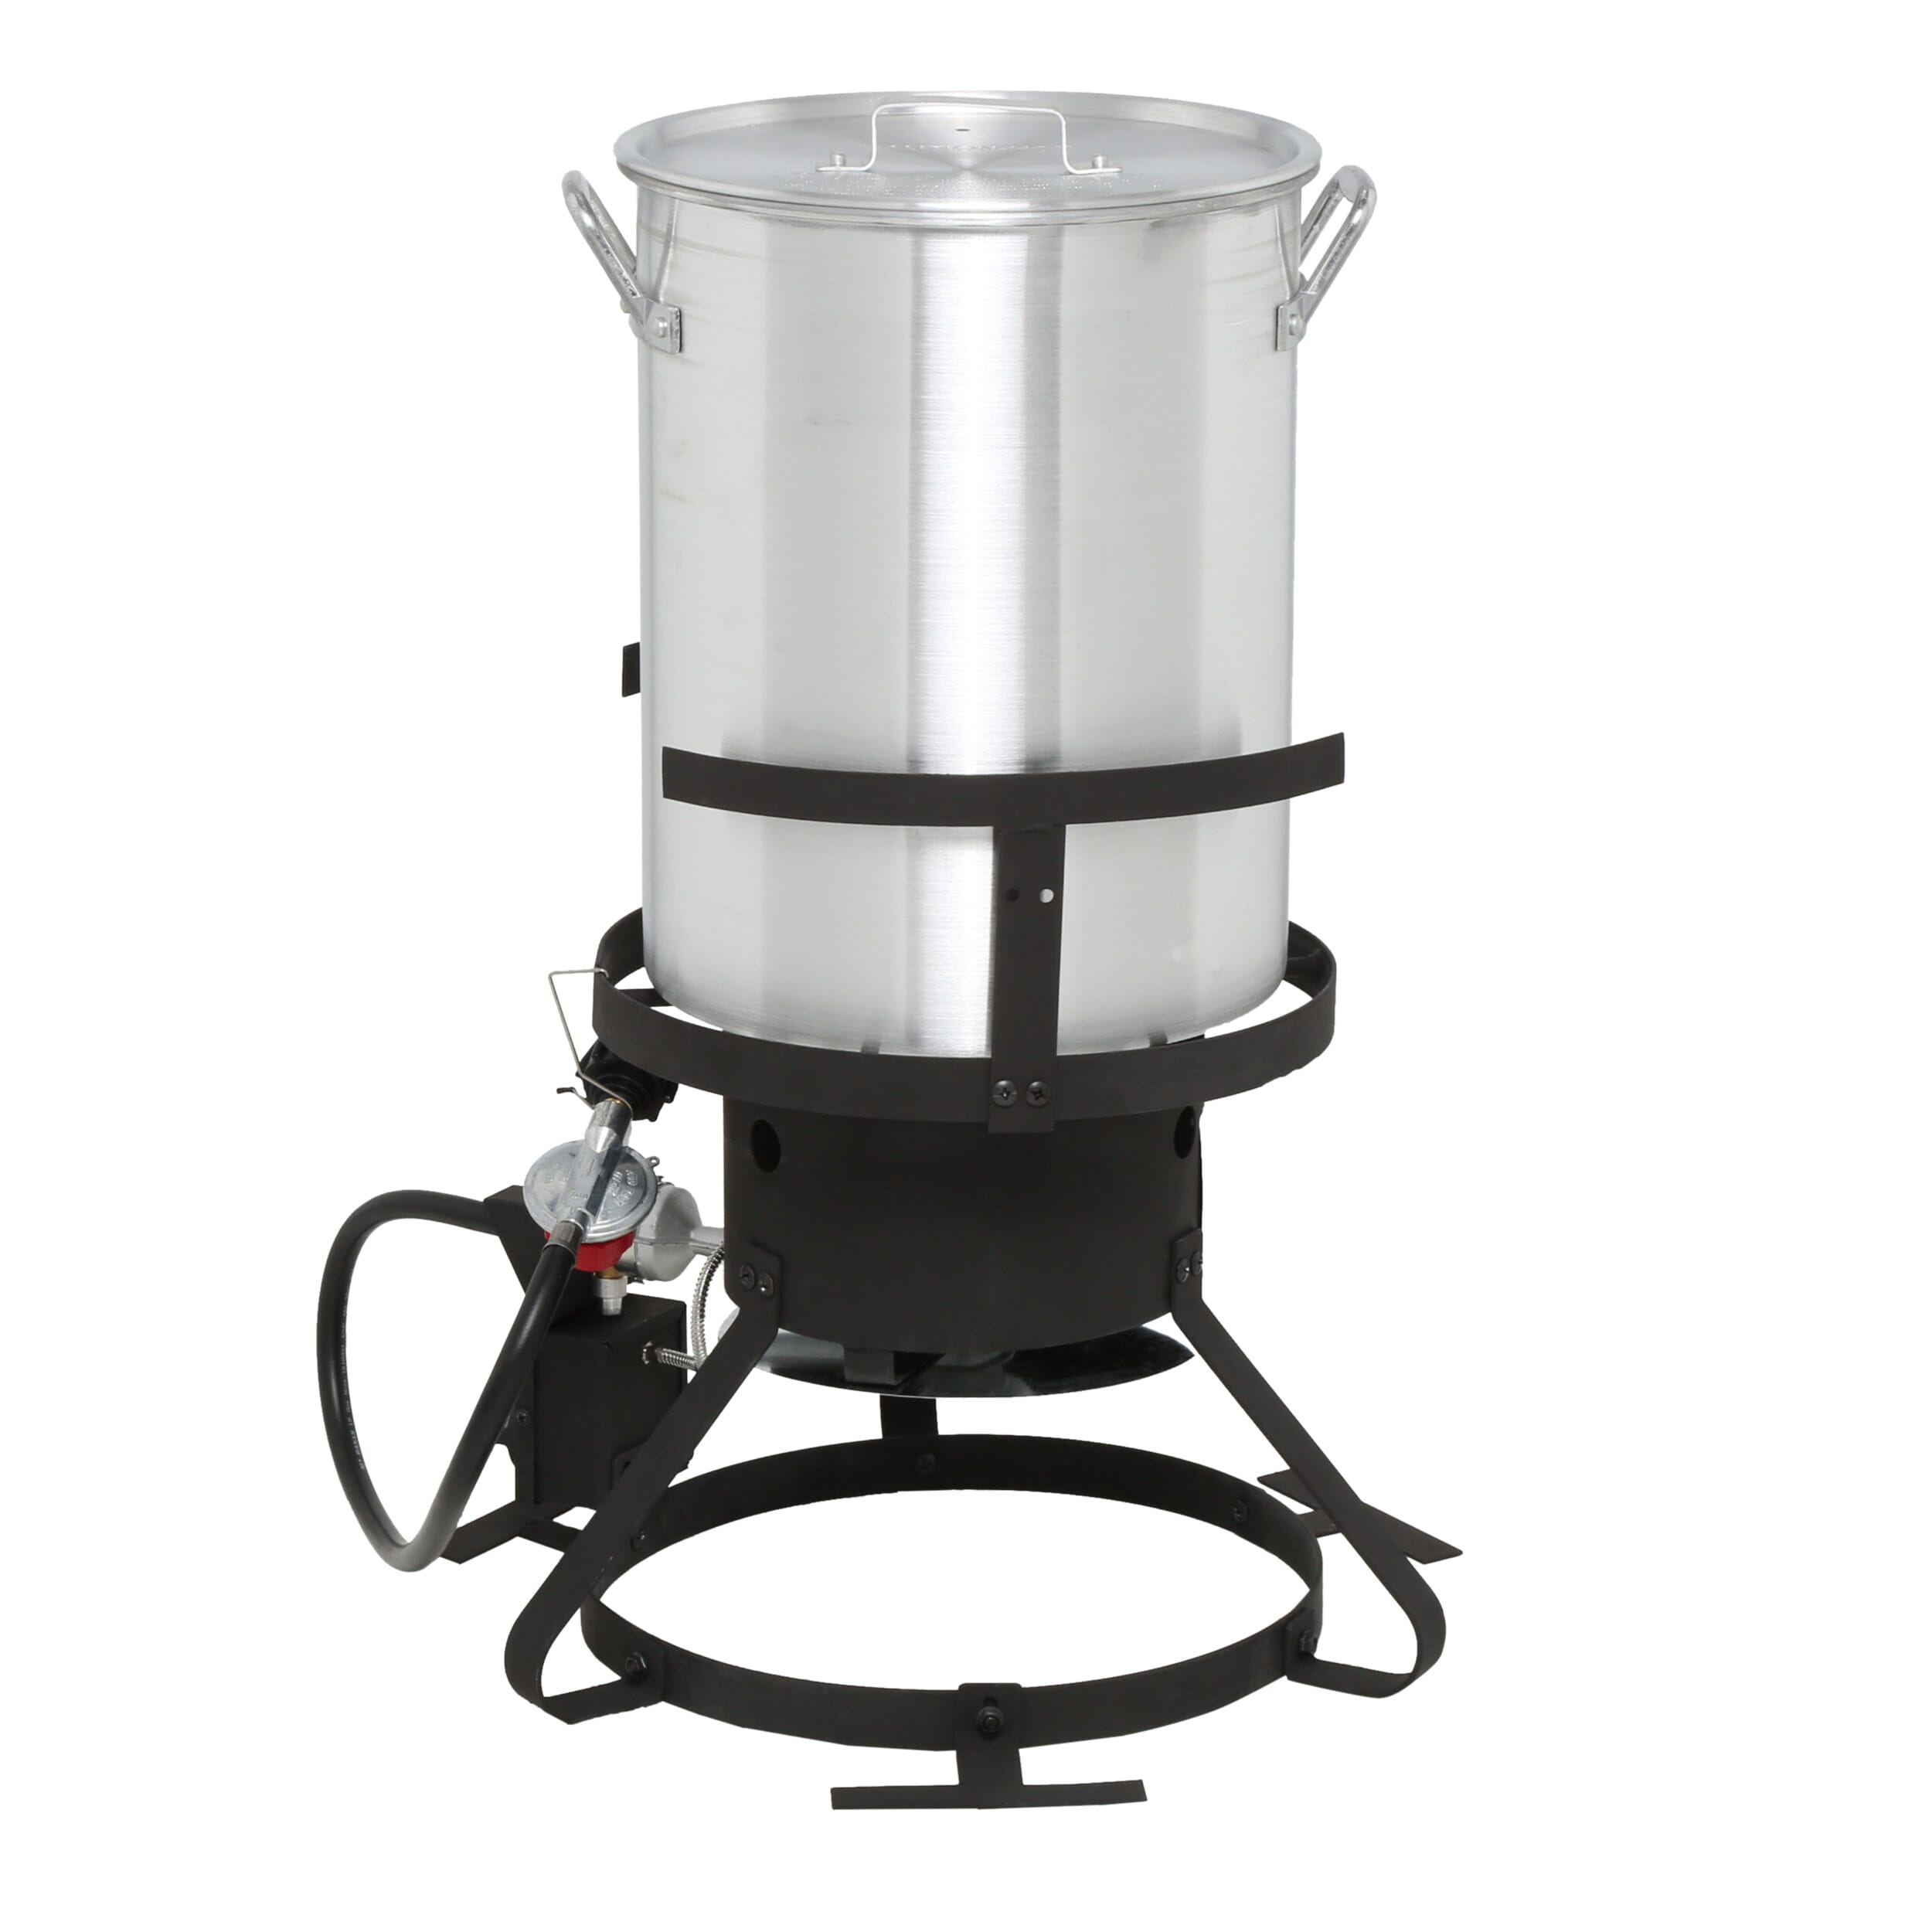 Turkey fryer featuring an aluminum pot and lid for durability